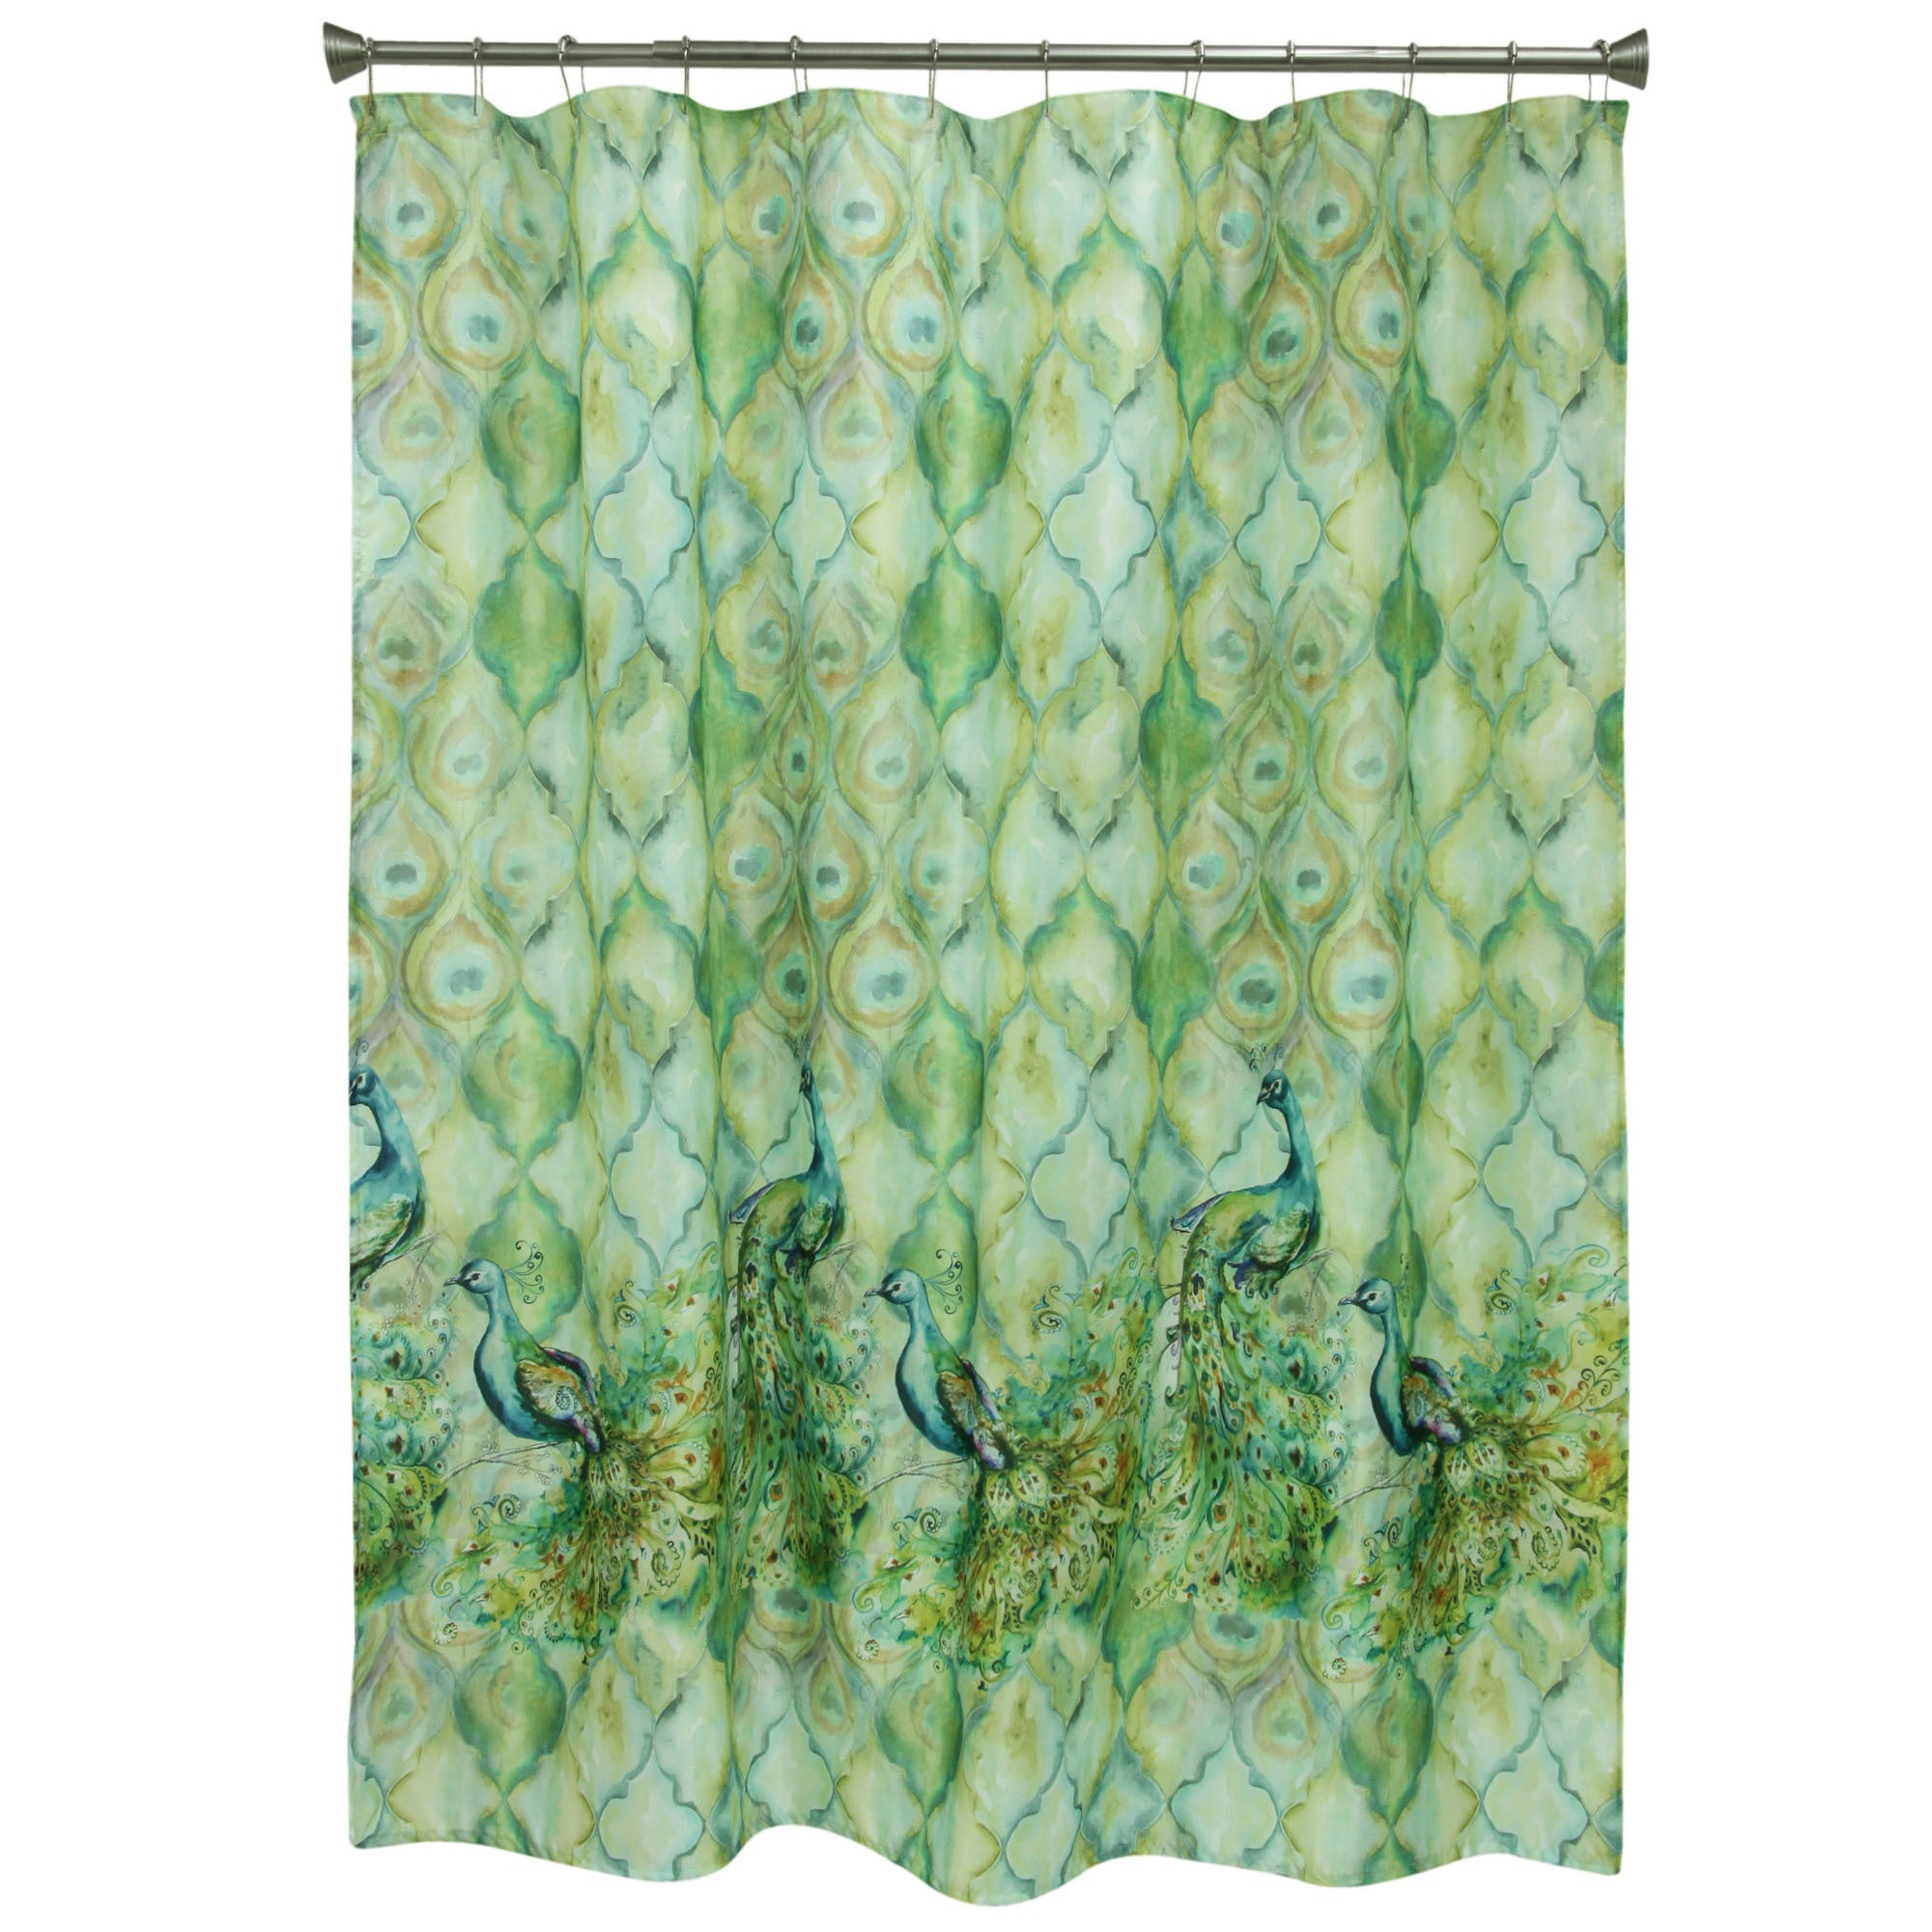 Animal Print Bacova Shower Curtains Accessories Out Of